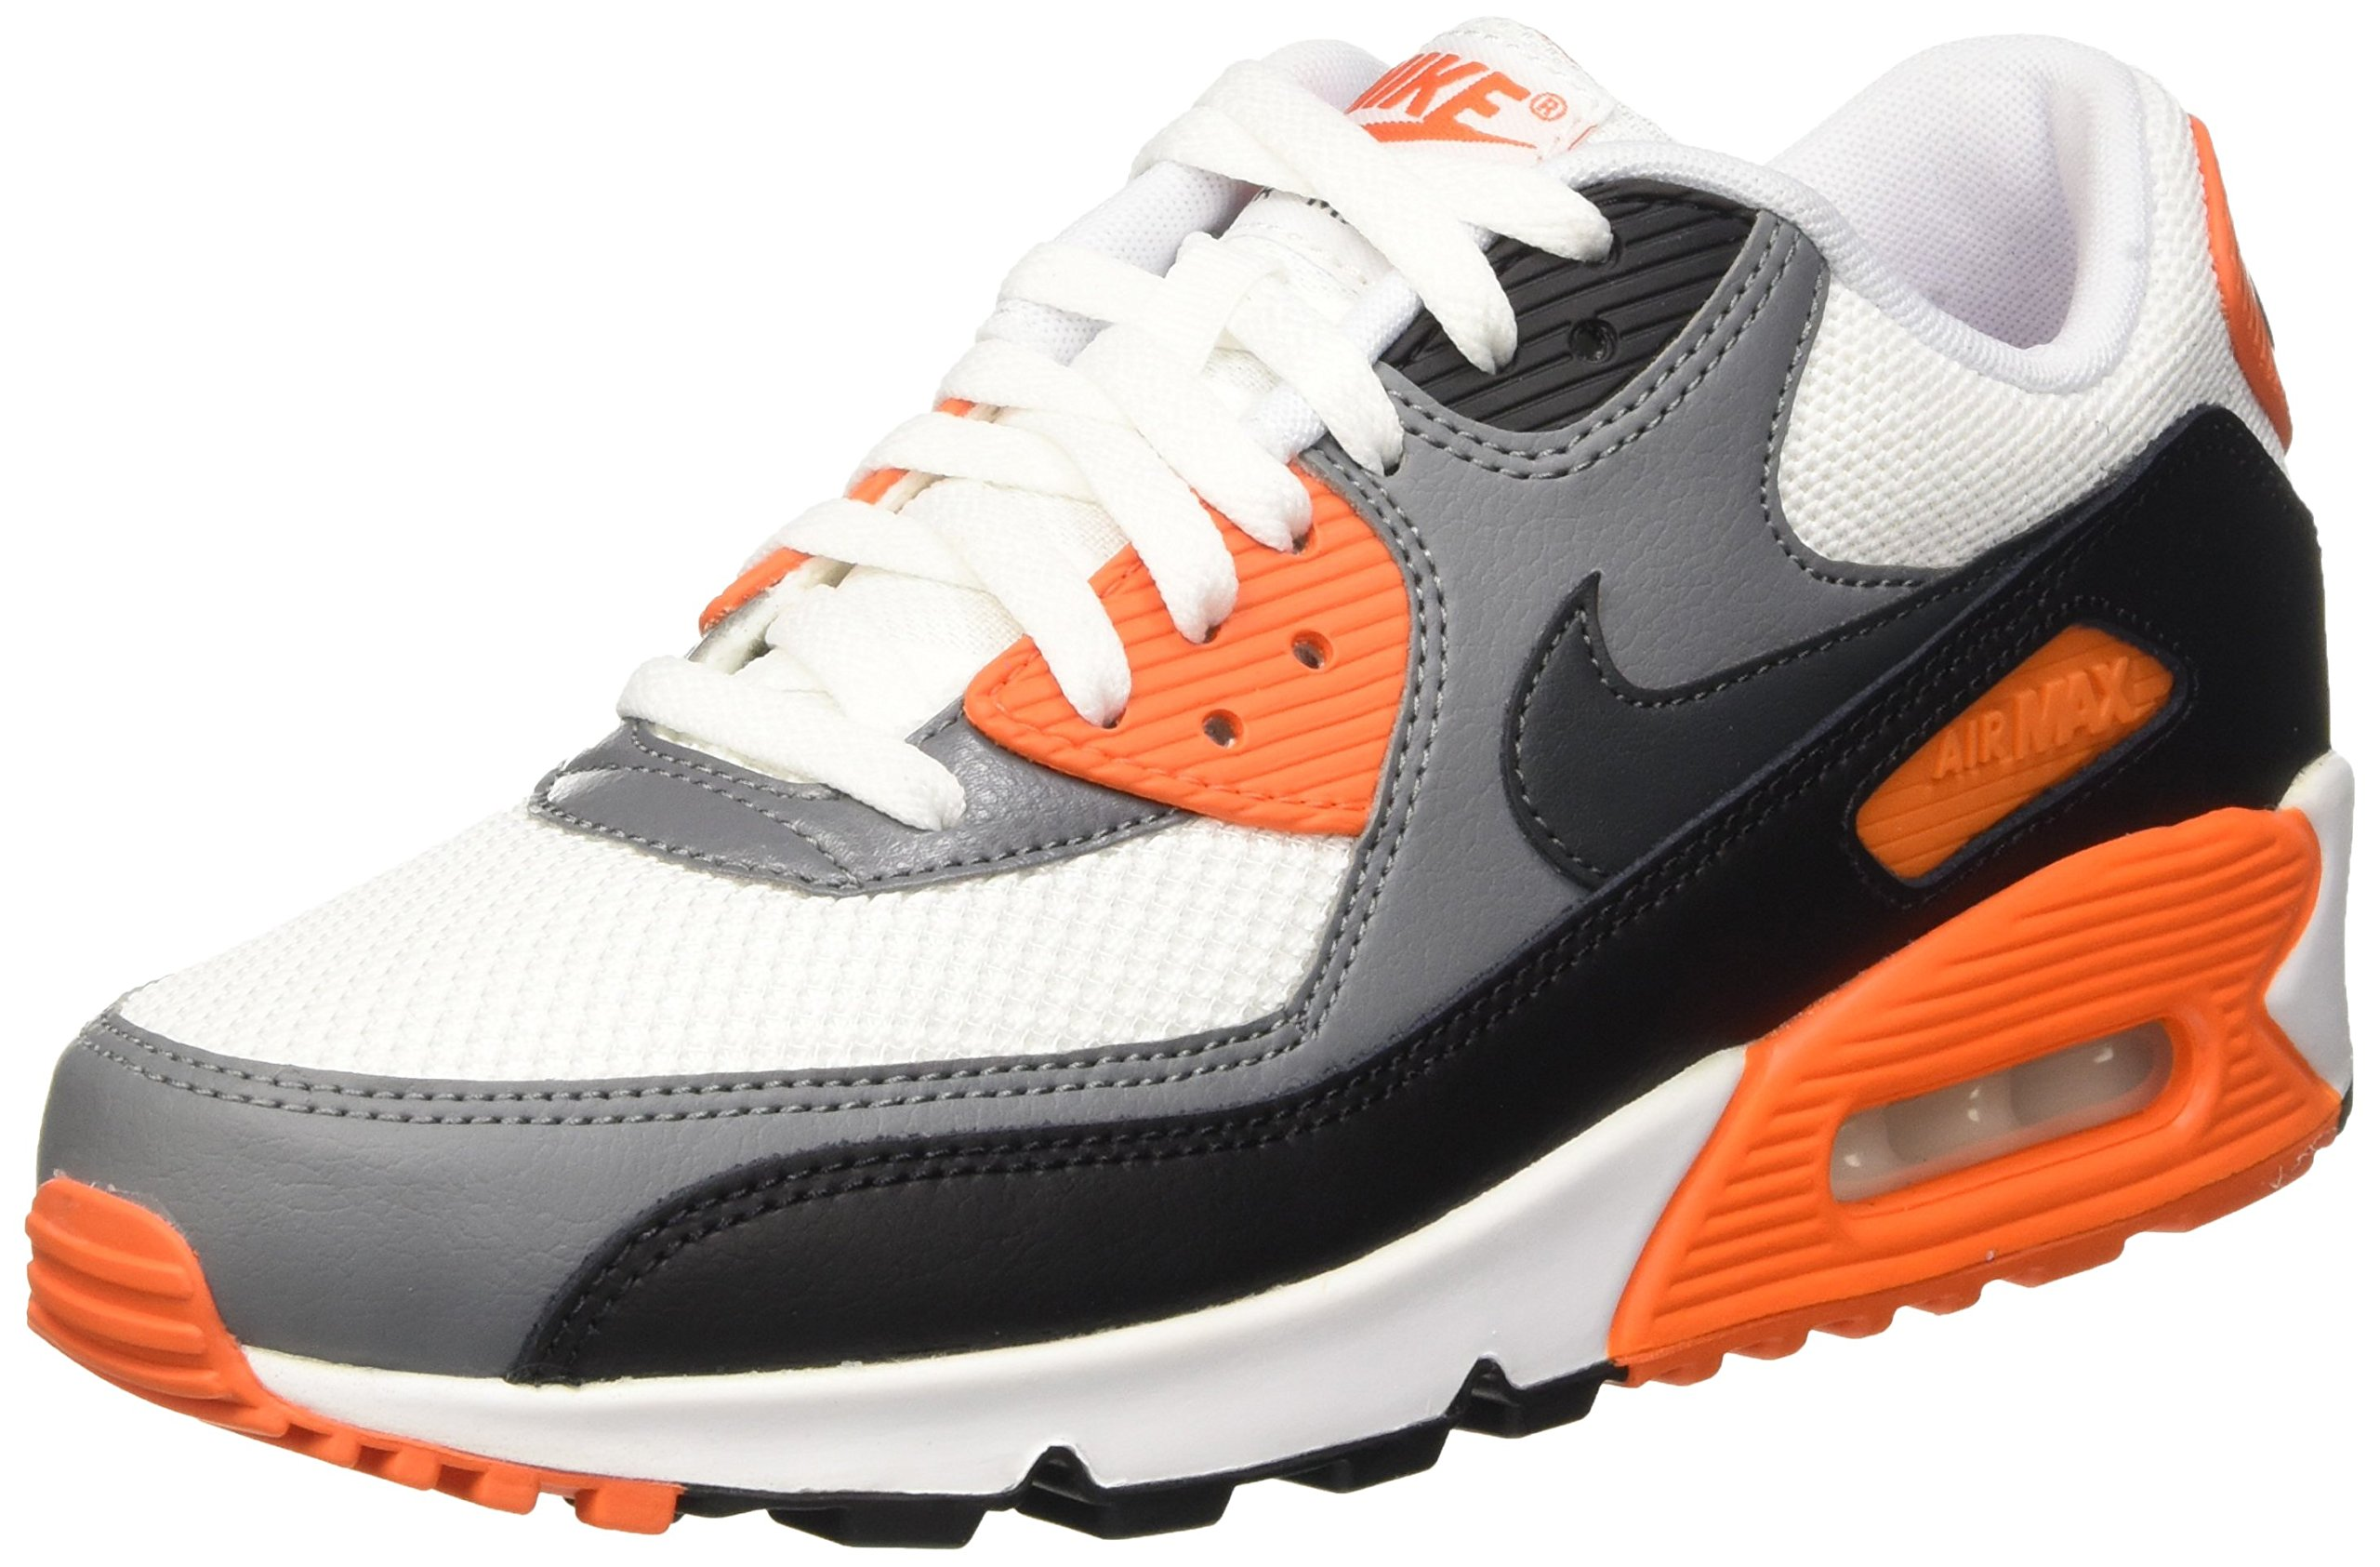 finest selection 852d6 1f483 Galleon - NIKE Men s Air Max 90 Essential Sneakers, White Black   Grey ( White Anthracite-Cool Grey-Blk), 11.5 UK